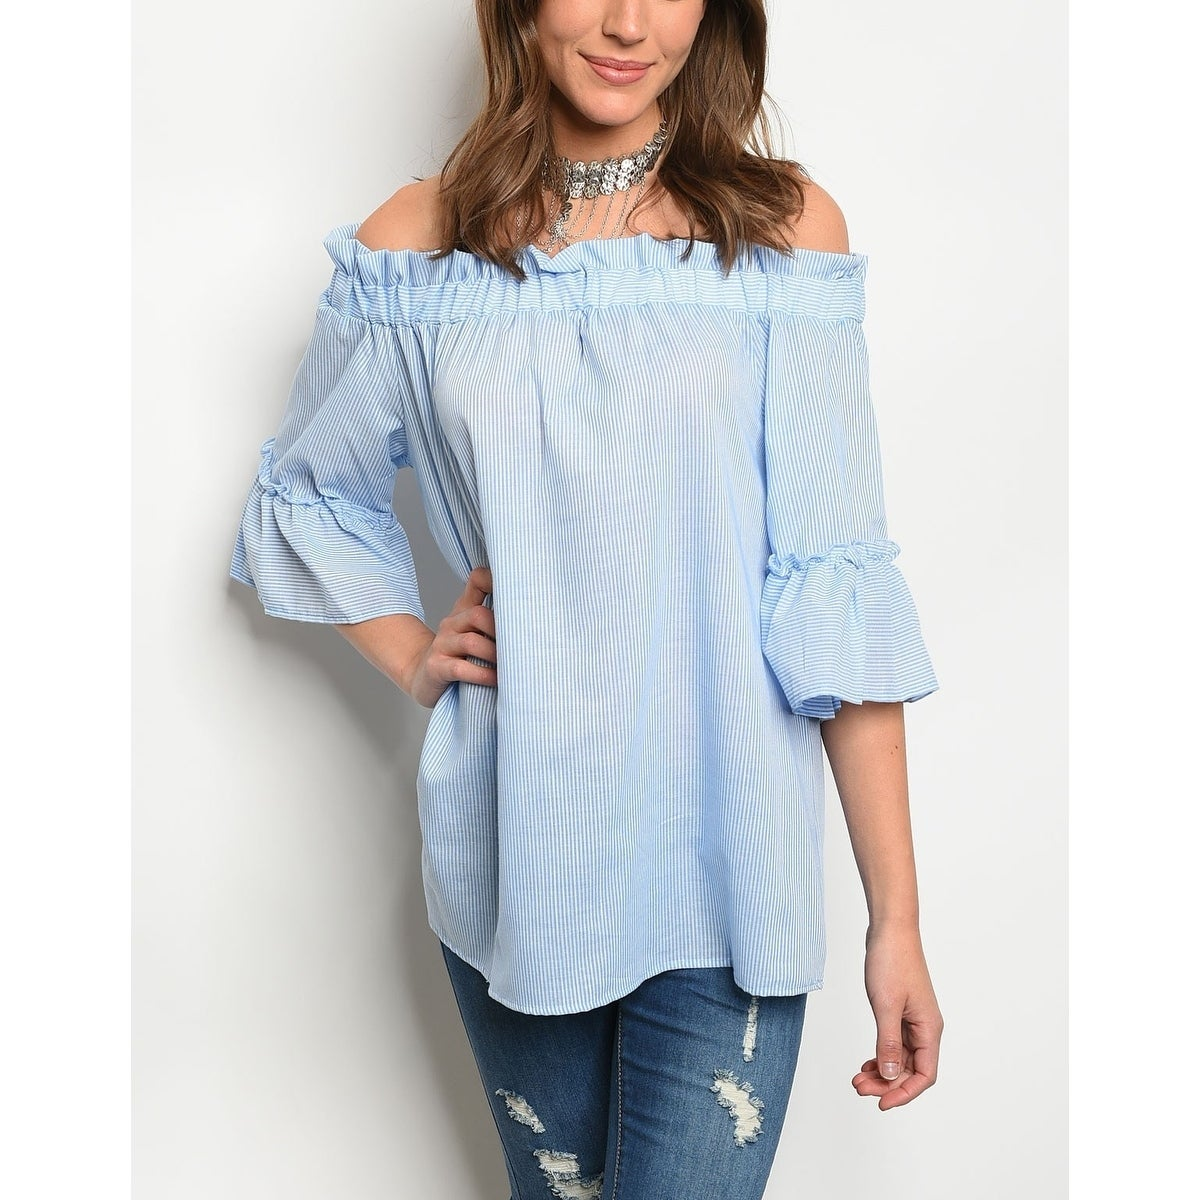 Wine Stained Blouse Reviews Anlis